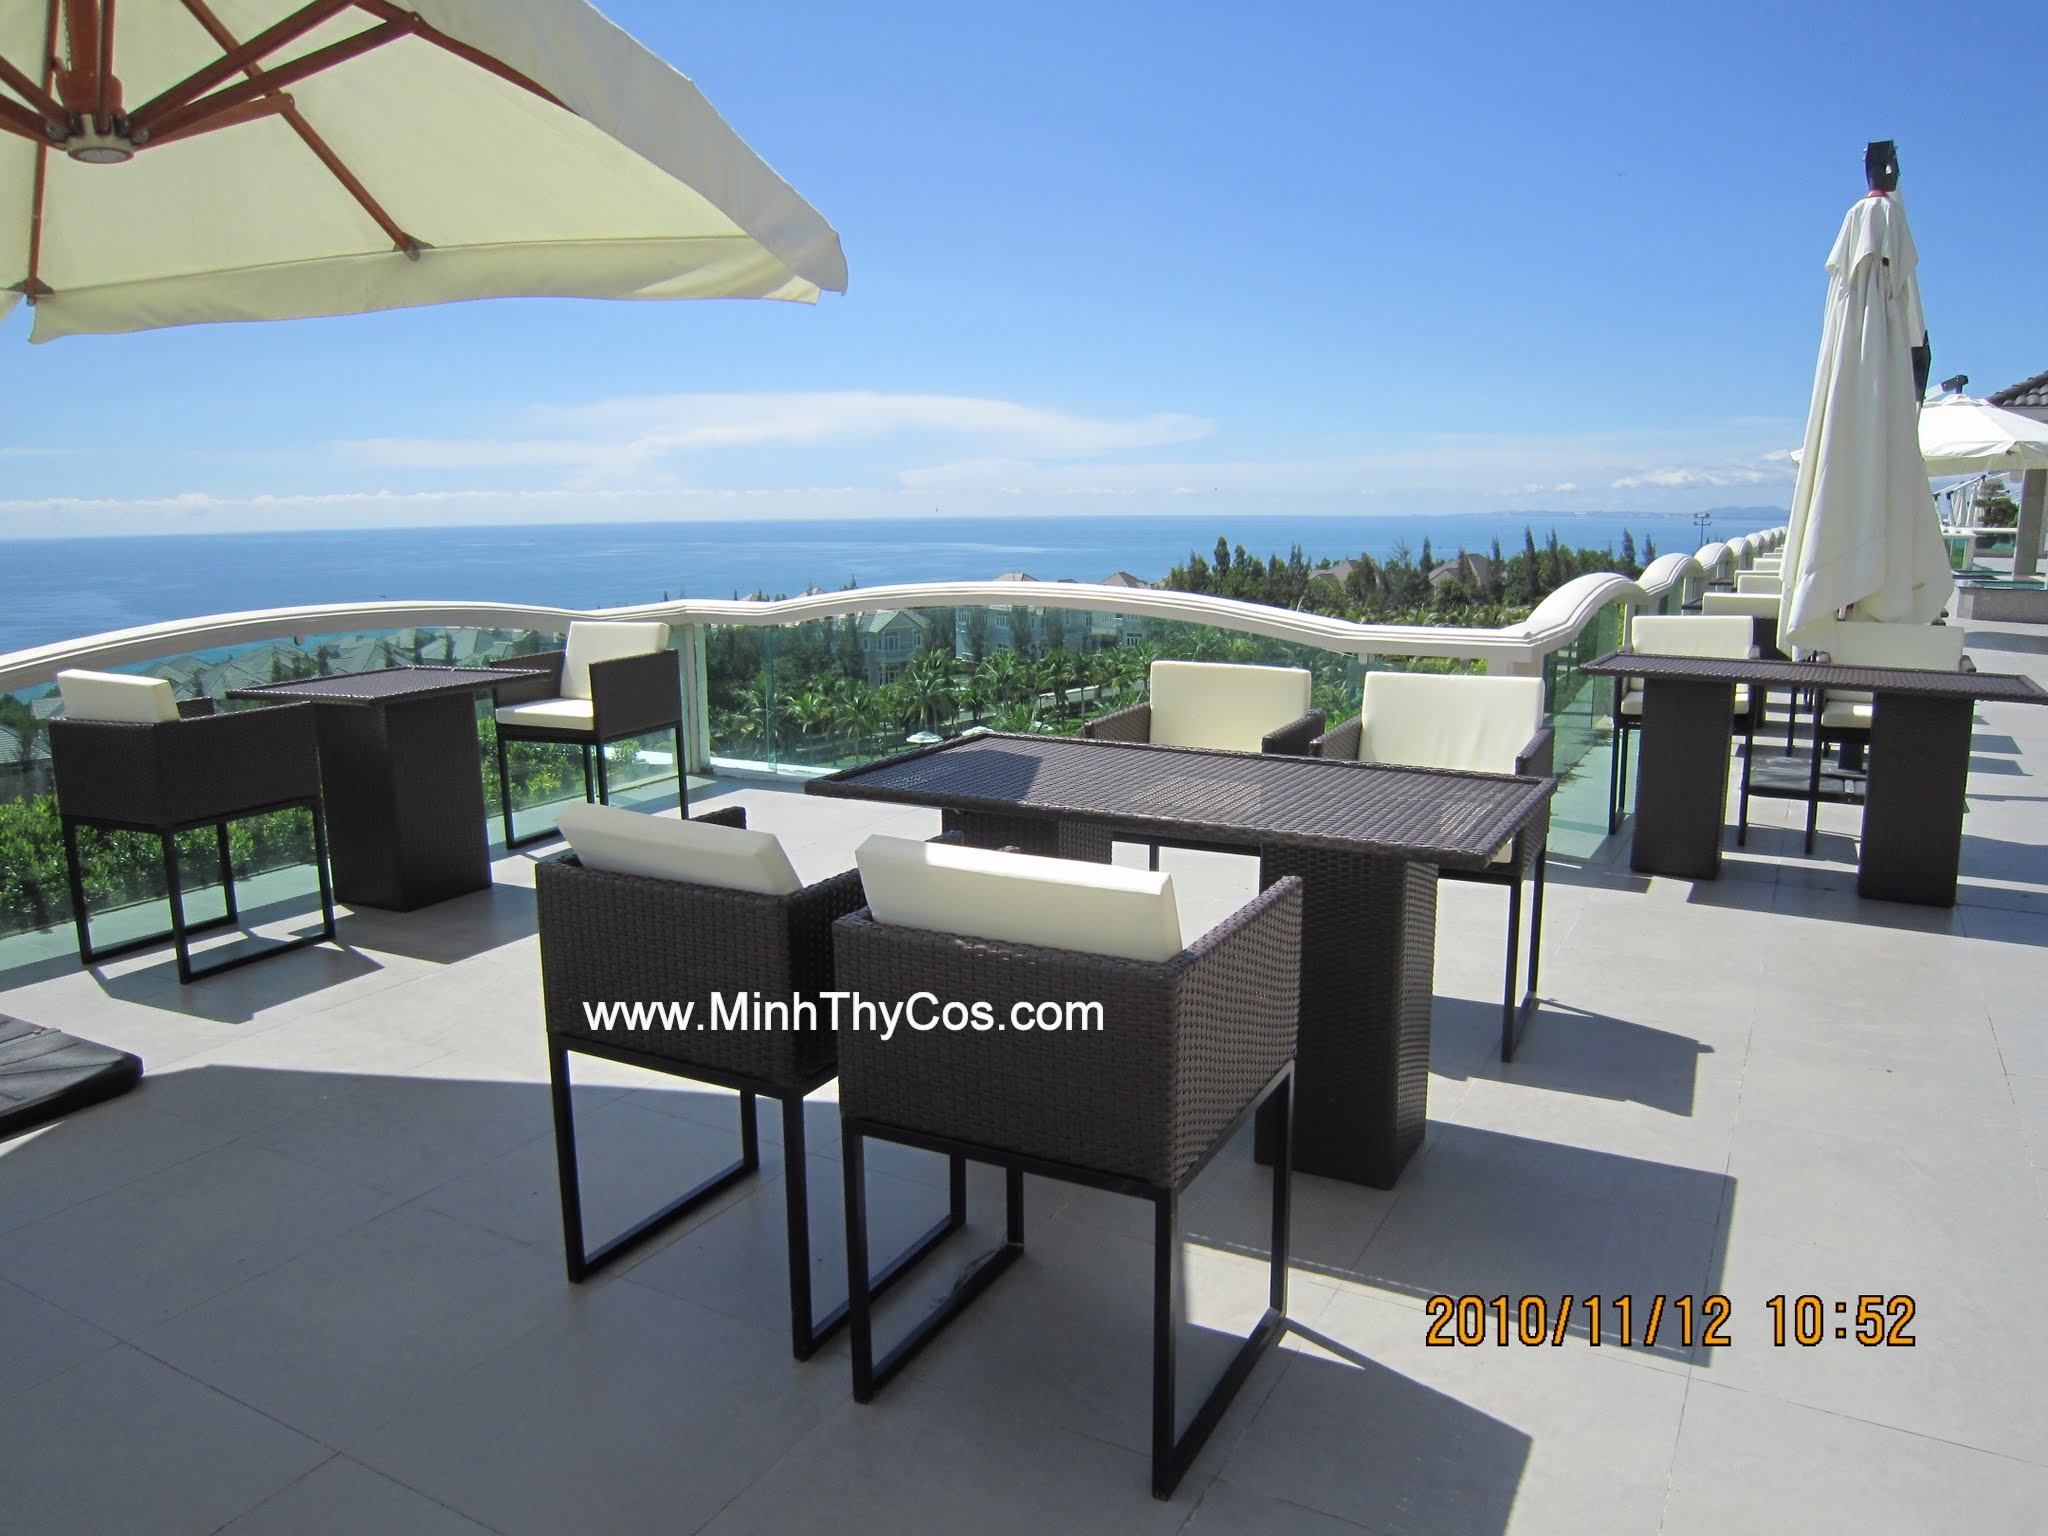 Outdoor wicker dining set sEALINK Phan Thiet